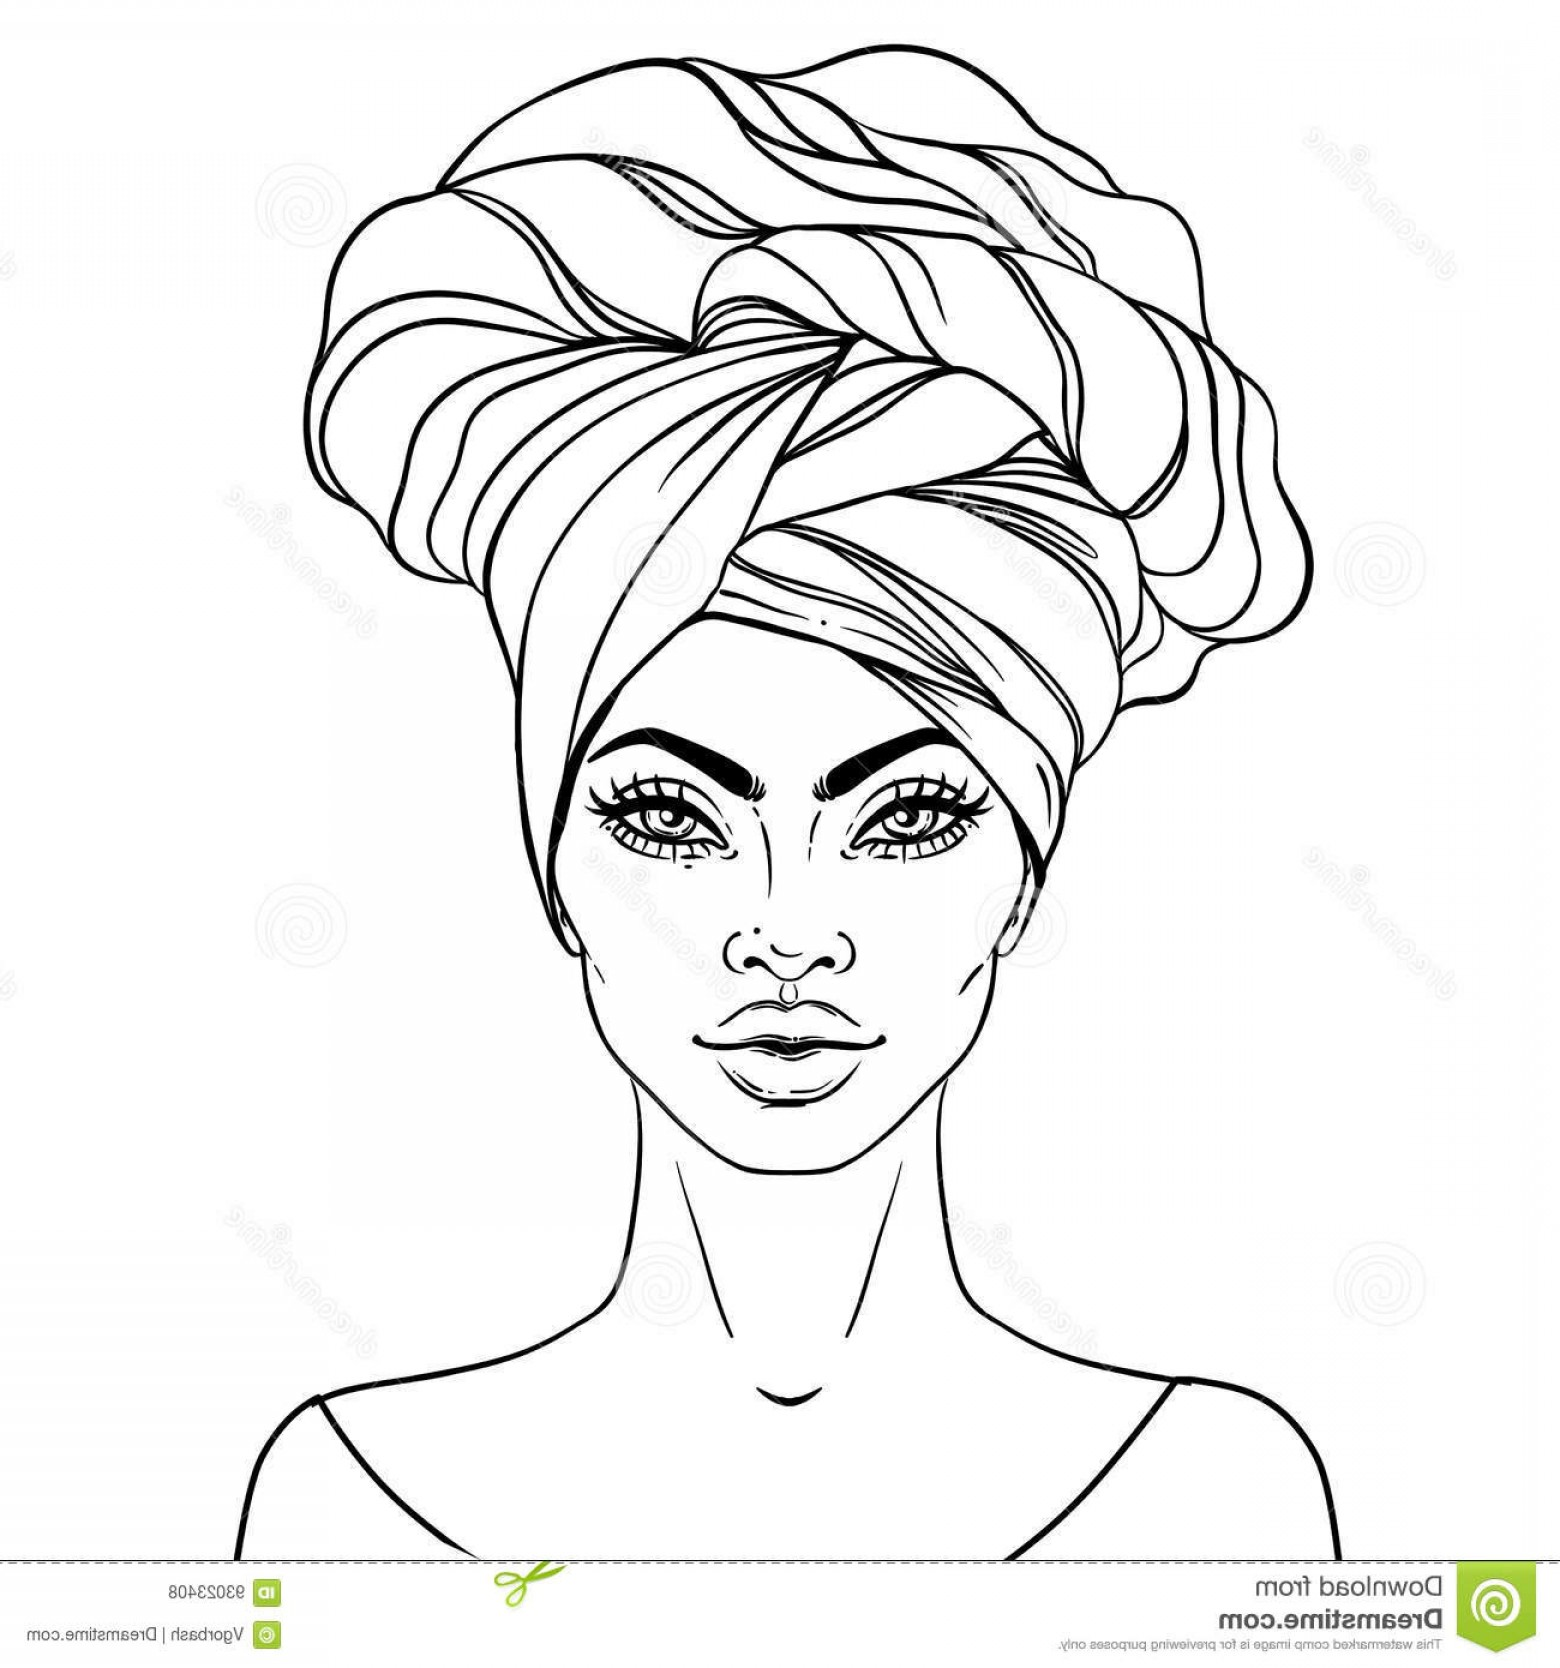 Black Woman Stock Vector: Stock Illustration African American Pretty Girl Vector Illustration Black Woman Glossy Lips Turban Great Avatars Image